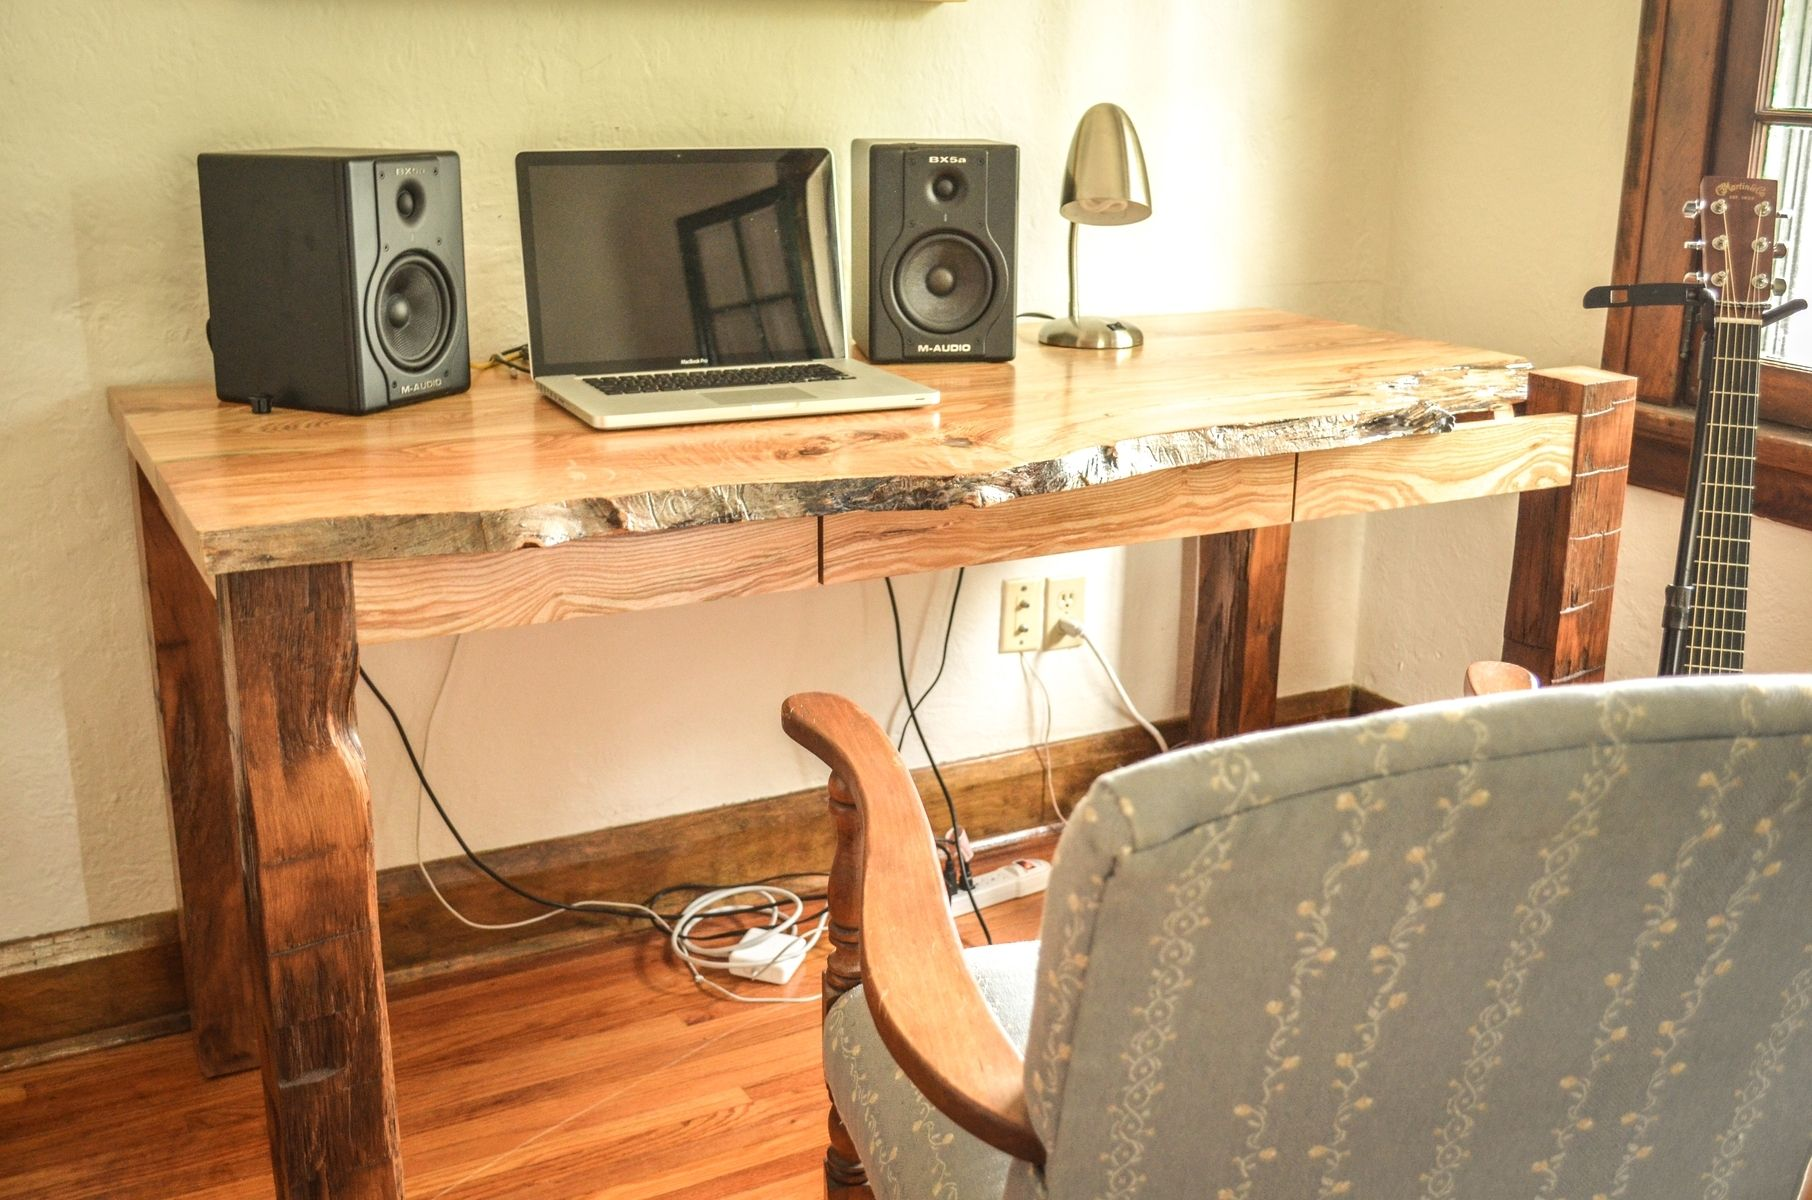 Rustic Americana Hardwood Executive Desk Home Office: Hand Crafted Live Edge Ash Desk By Heritage Wood Co